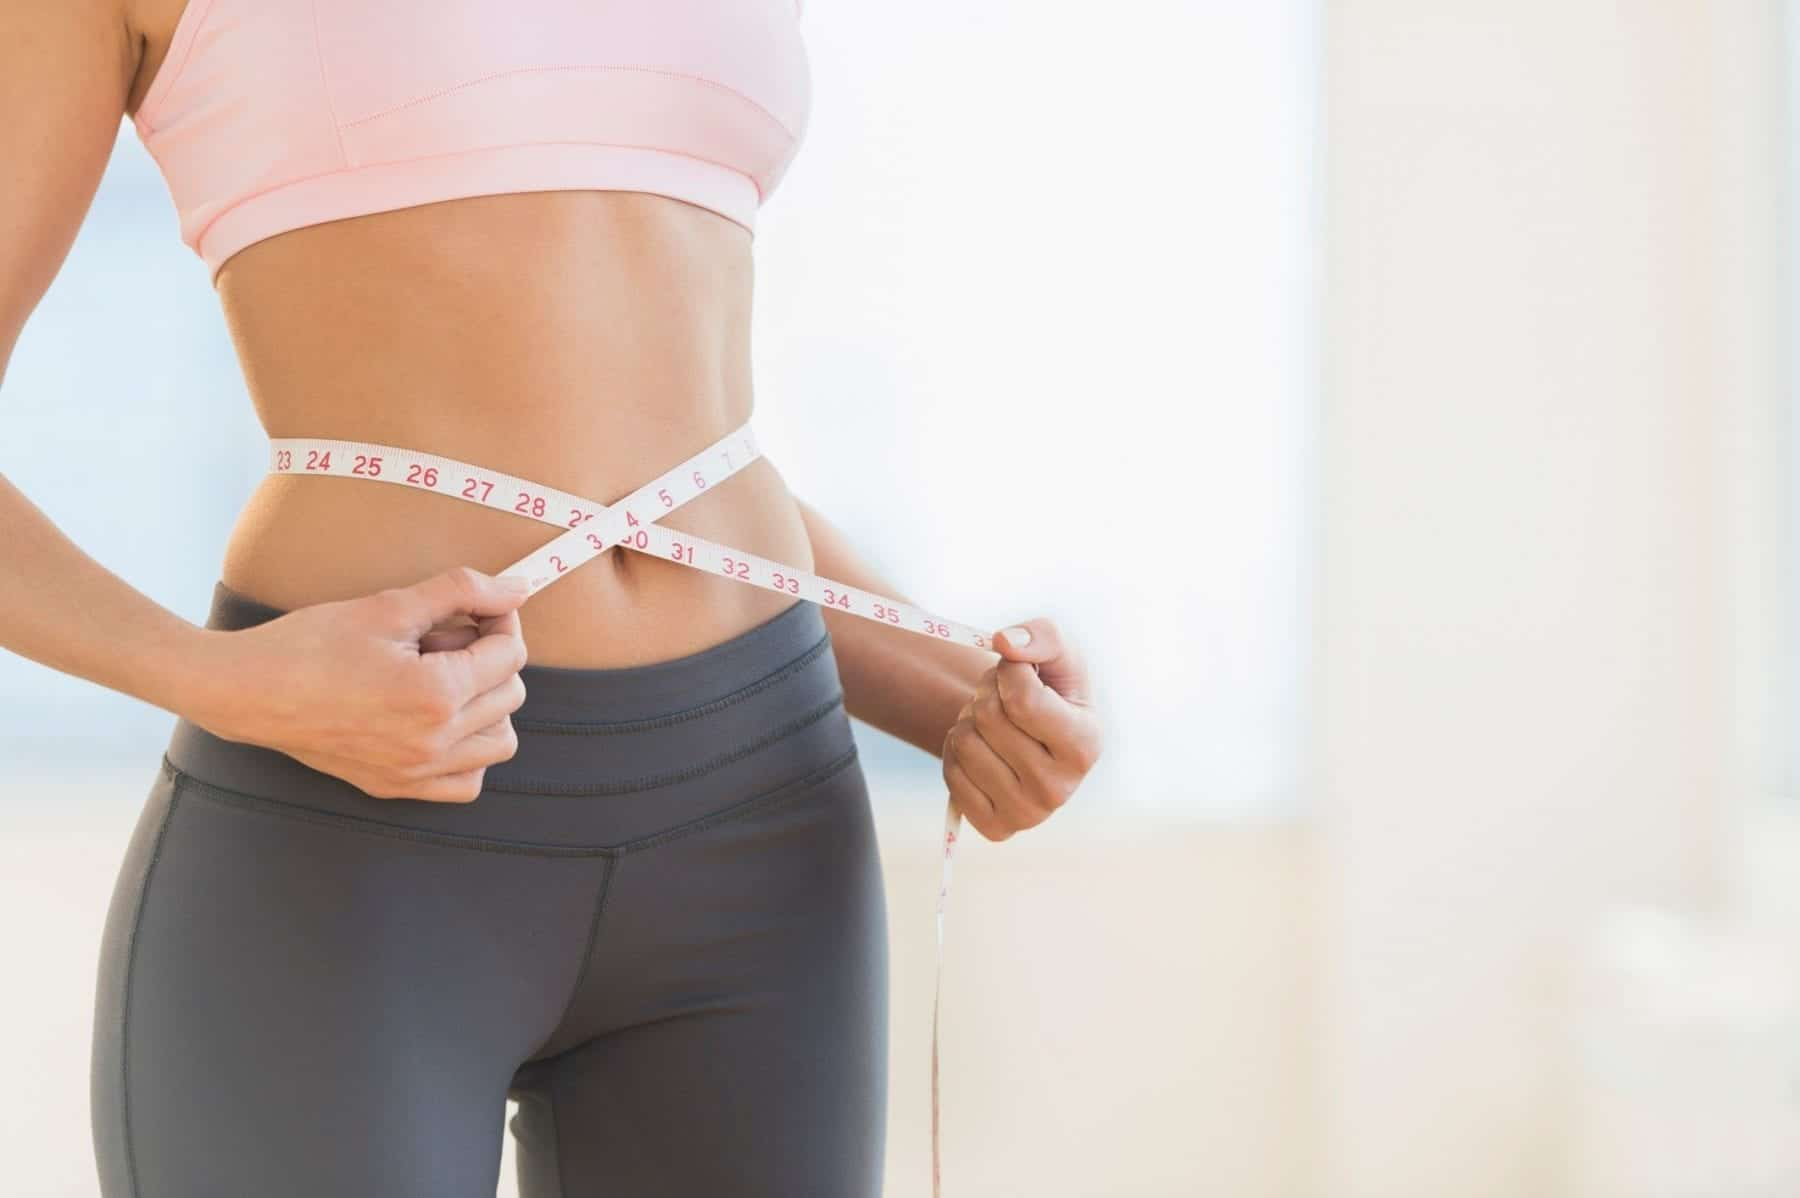 Weight Loss | Connecticut Disc and Laser Therapy Centers | Dr. James Dalfino